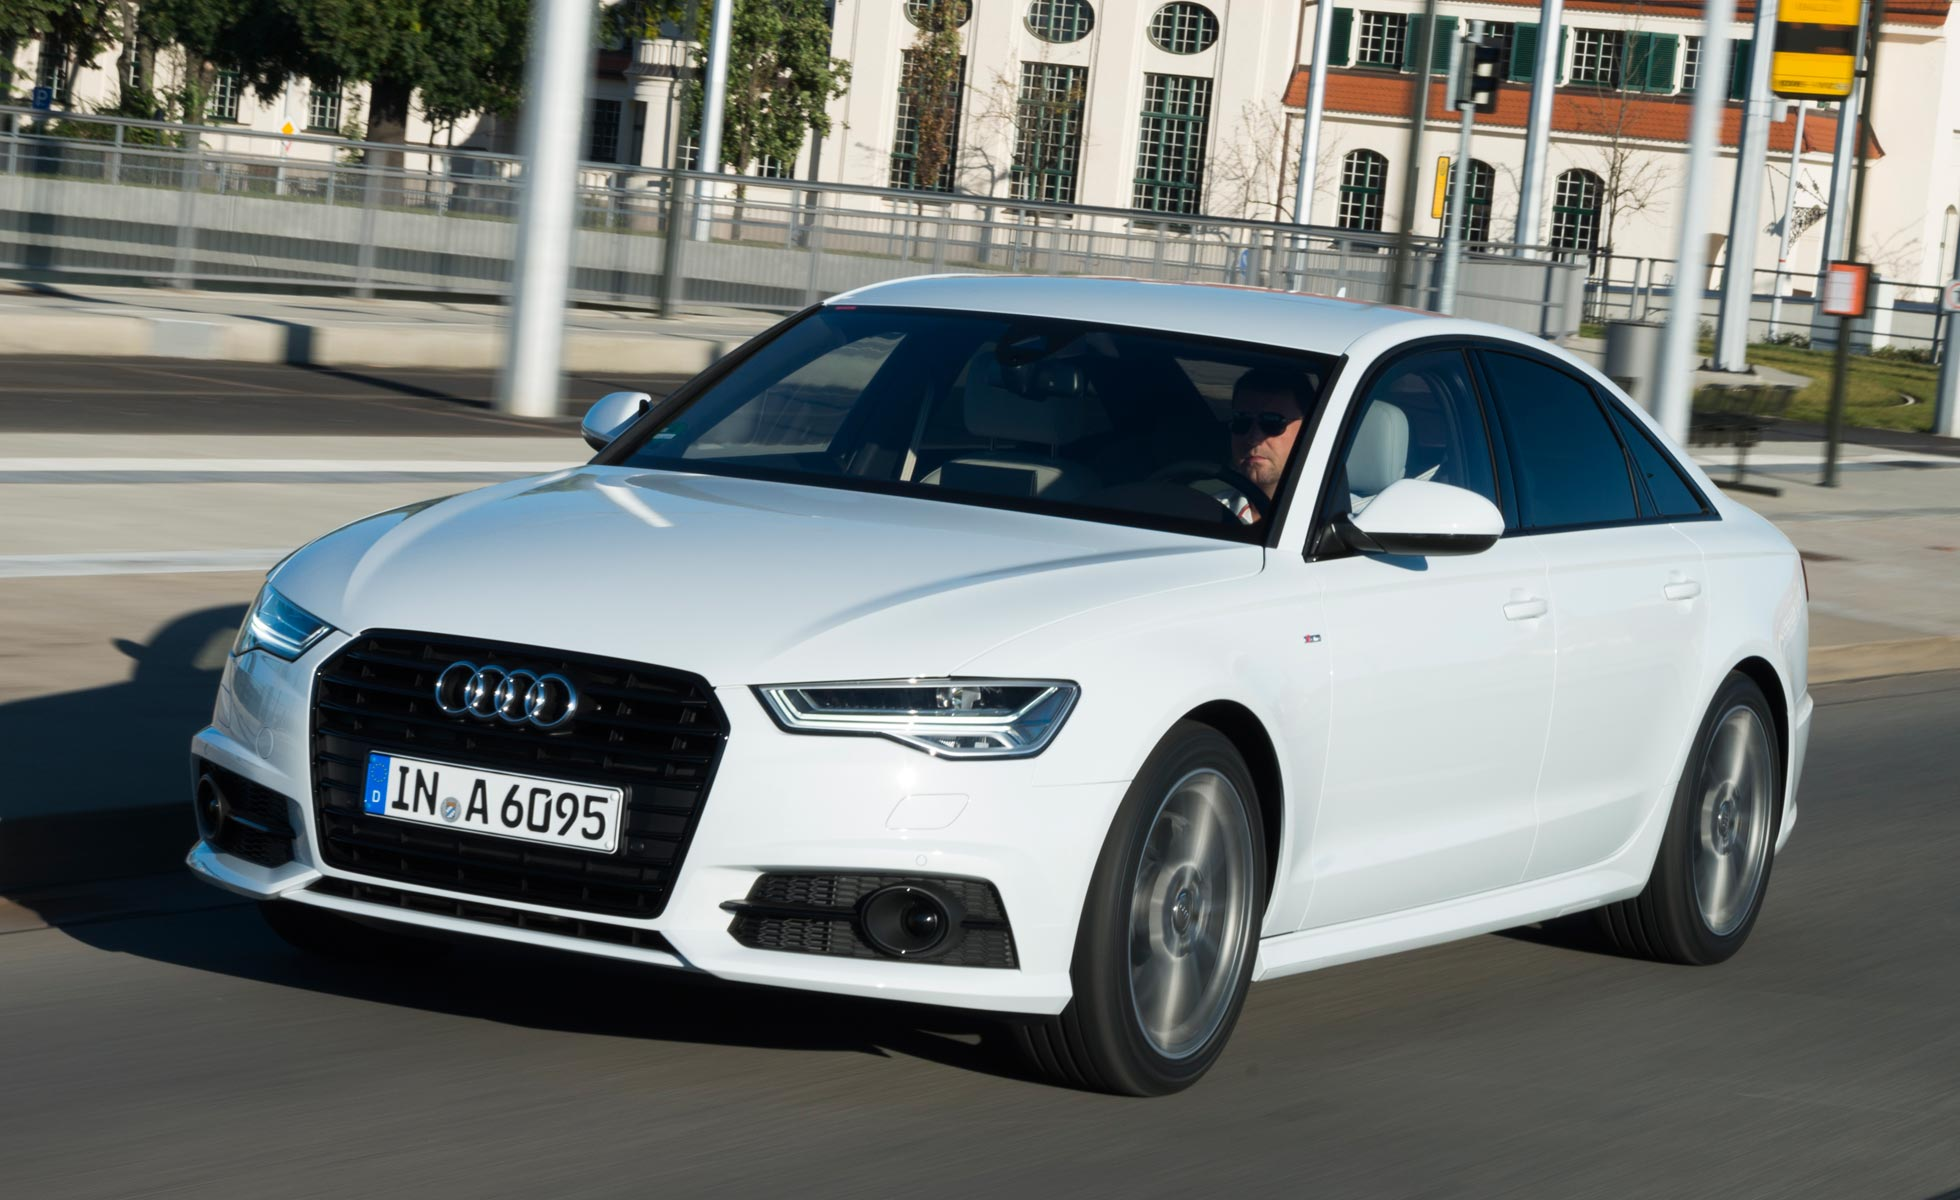 Audi A6 Facelift 2015 First Drive Review Motoring Research